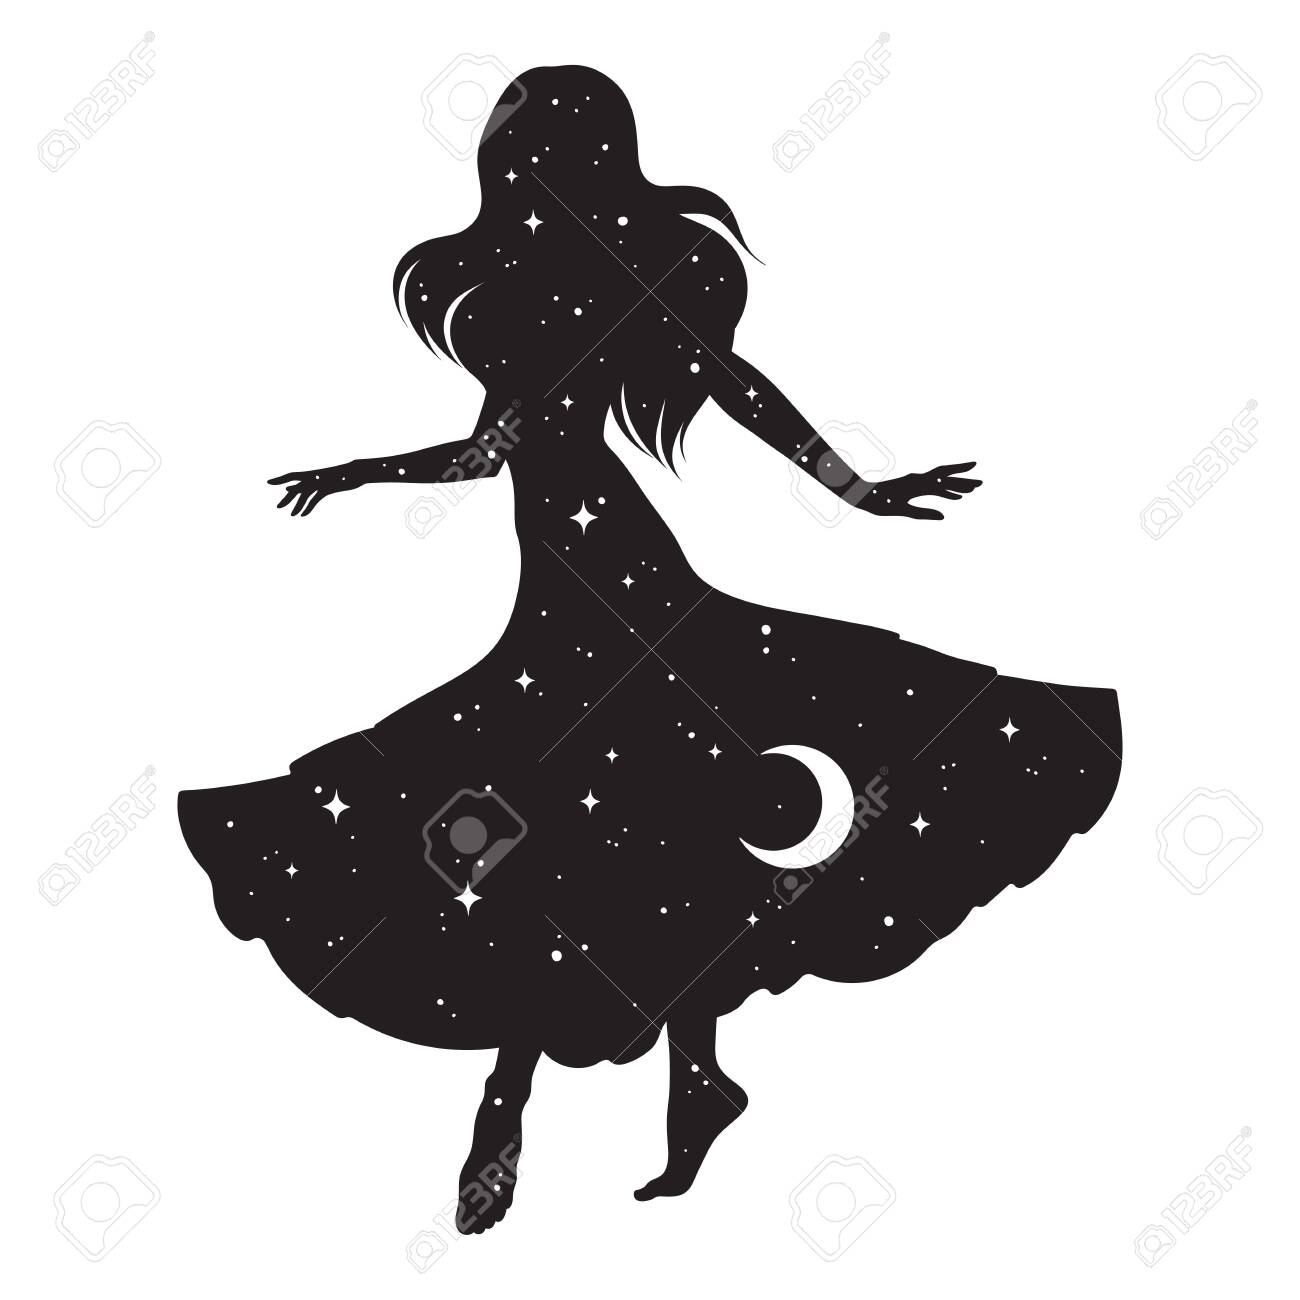 Beautiful dancing gypsy silhouette with crescent moon and stars isolated. Boho chic tattoo, sticker or print design vector illustration - 147978520